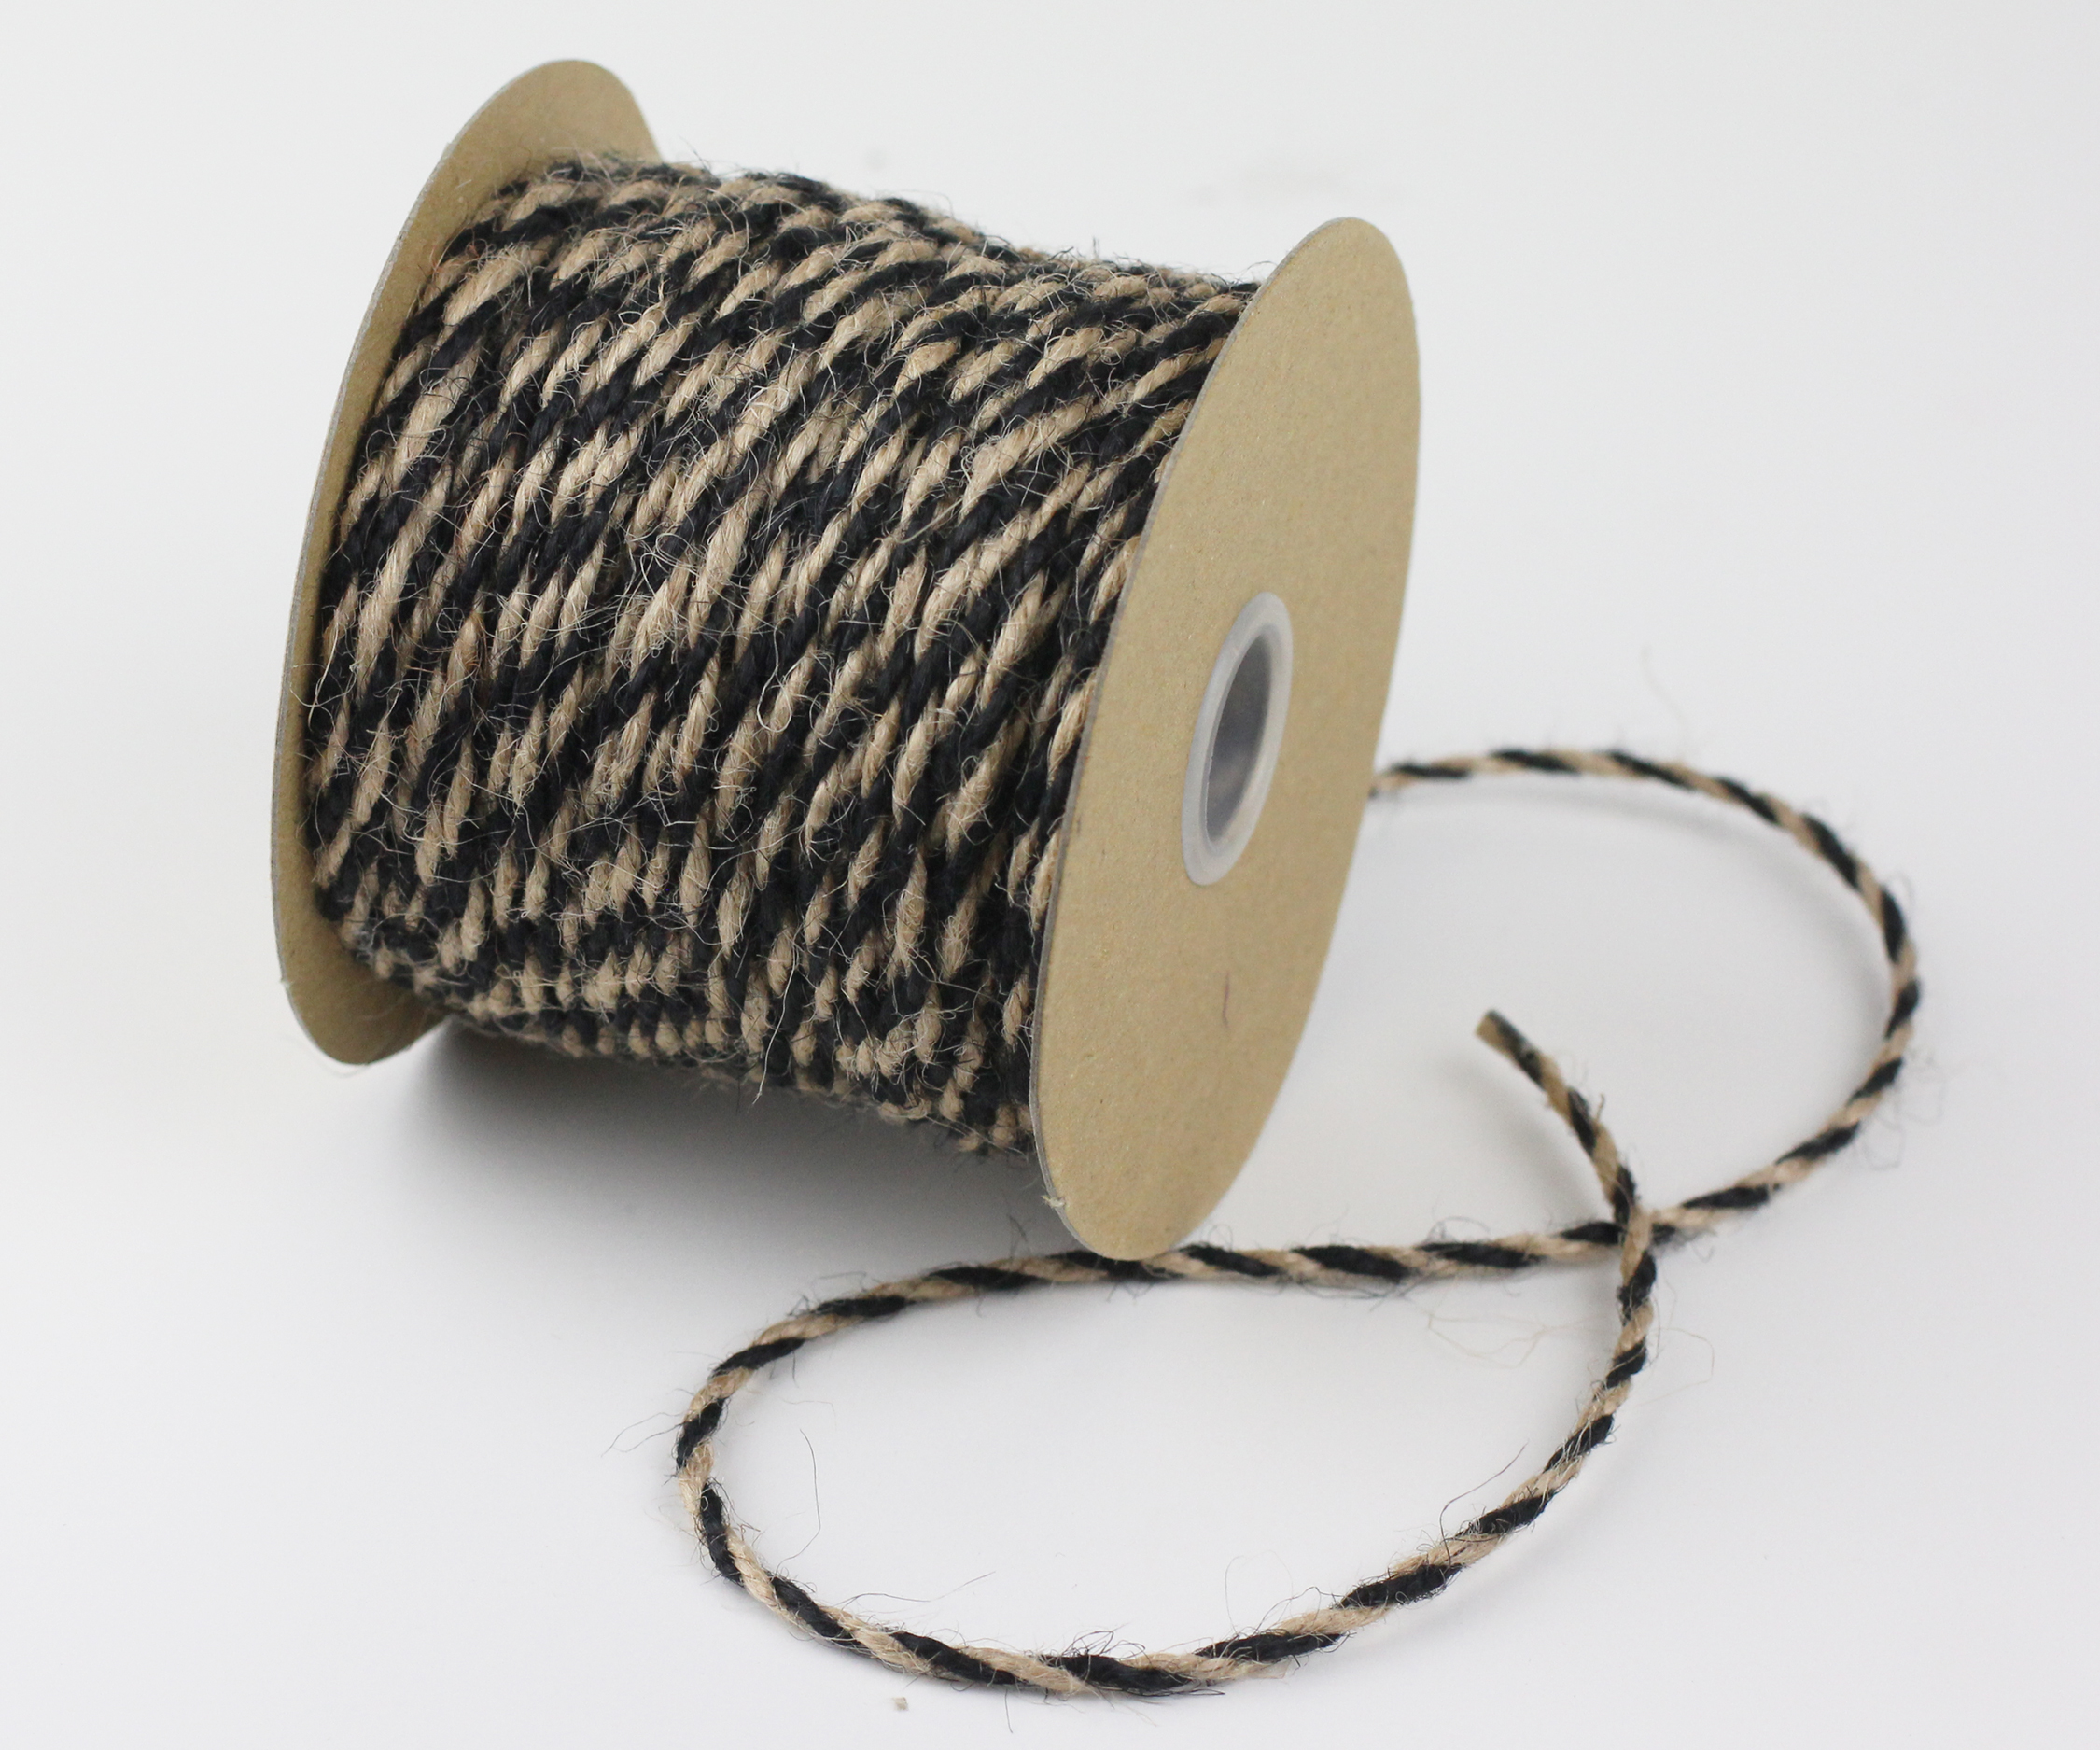 2.5 mm Black/Natural Jute Twine - 50 Yards